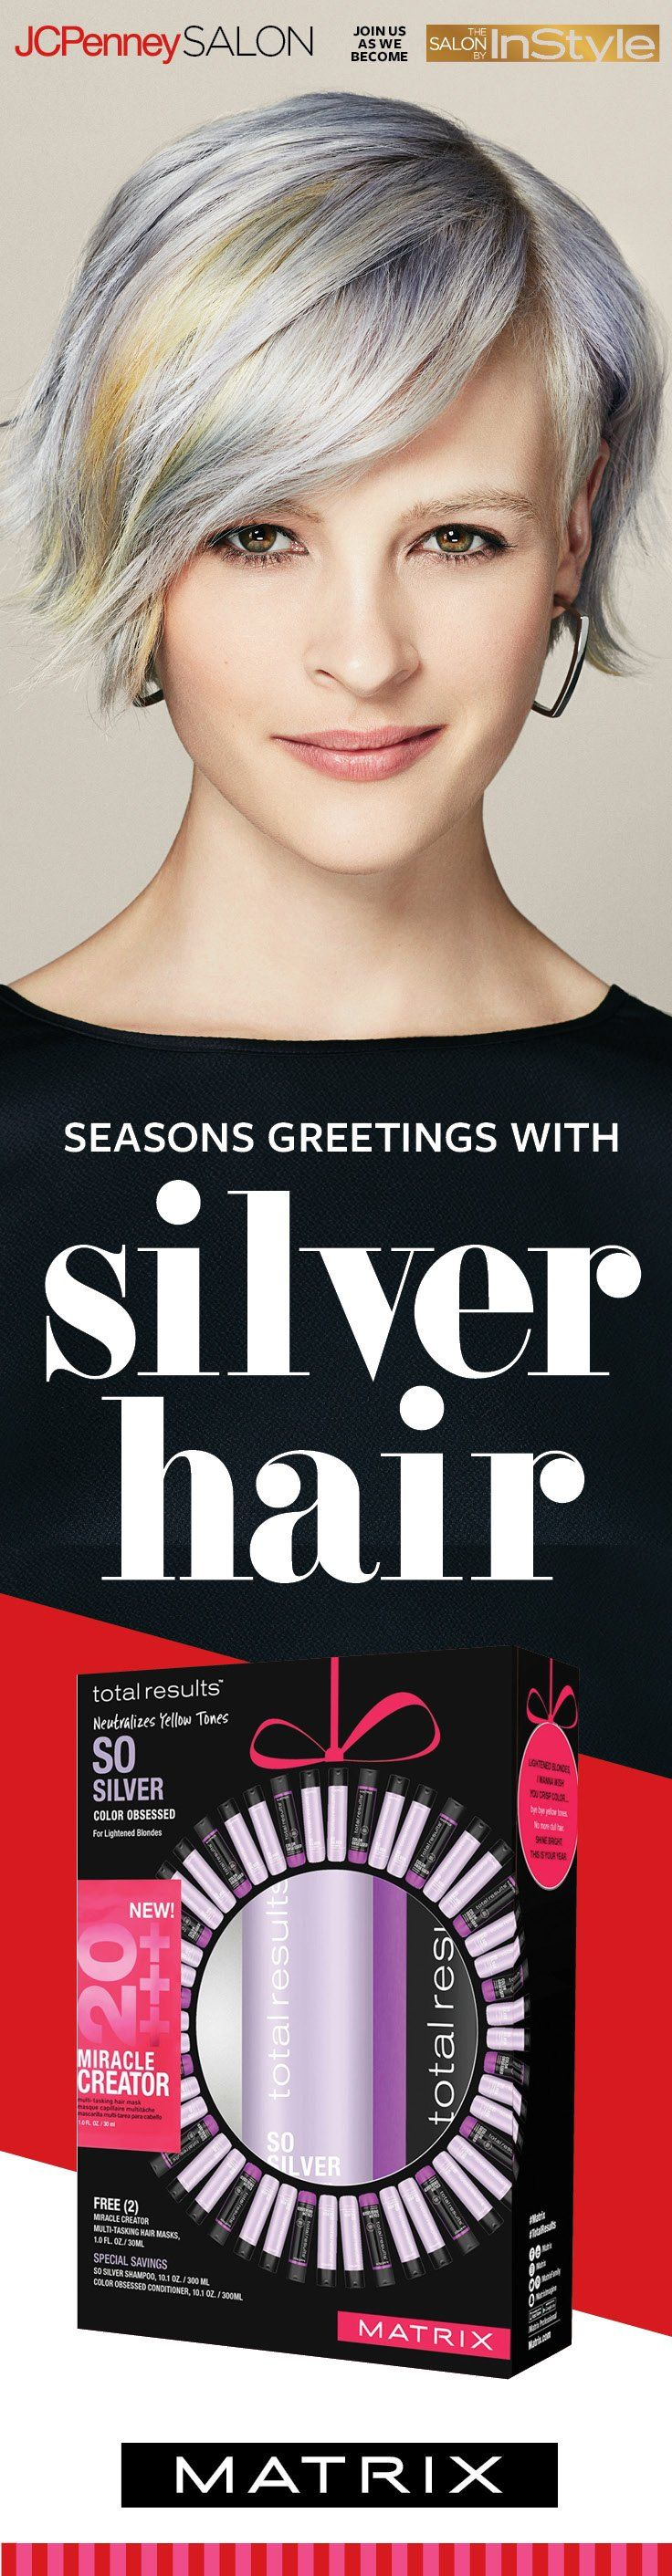 """Try a new hairstyle—like silver highlights or an edgy cut—and put the """"happy"""" back in your holidays! JCPenney Salon is THE place to go for a style pick-me-up. Plus, we have all the products to keep your hair looking great after you leave the salon. Matrix Total Results So Silver shampoo and conditioner help maintain the shimmer in your silver streaks all season long. Pssst—our gift sets make great stocking stuffers, too!"""